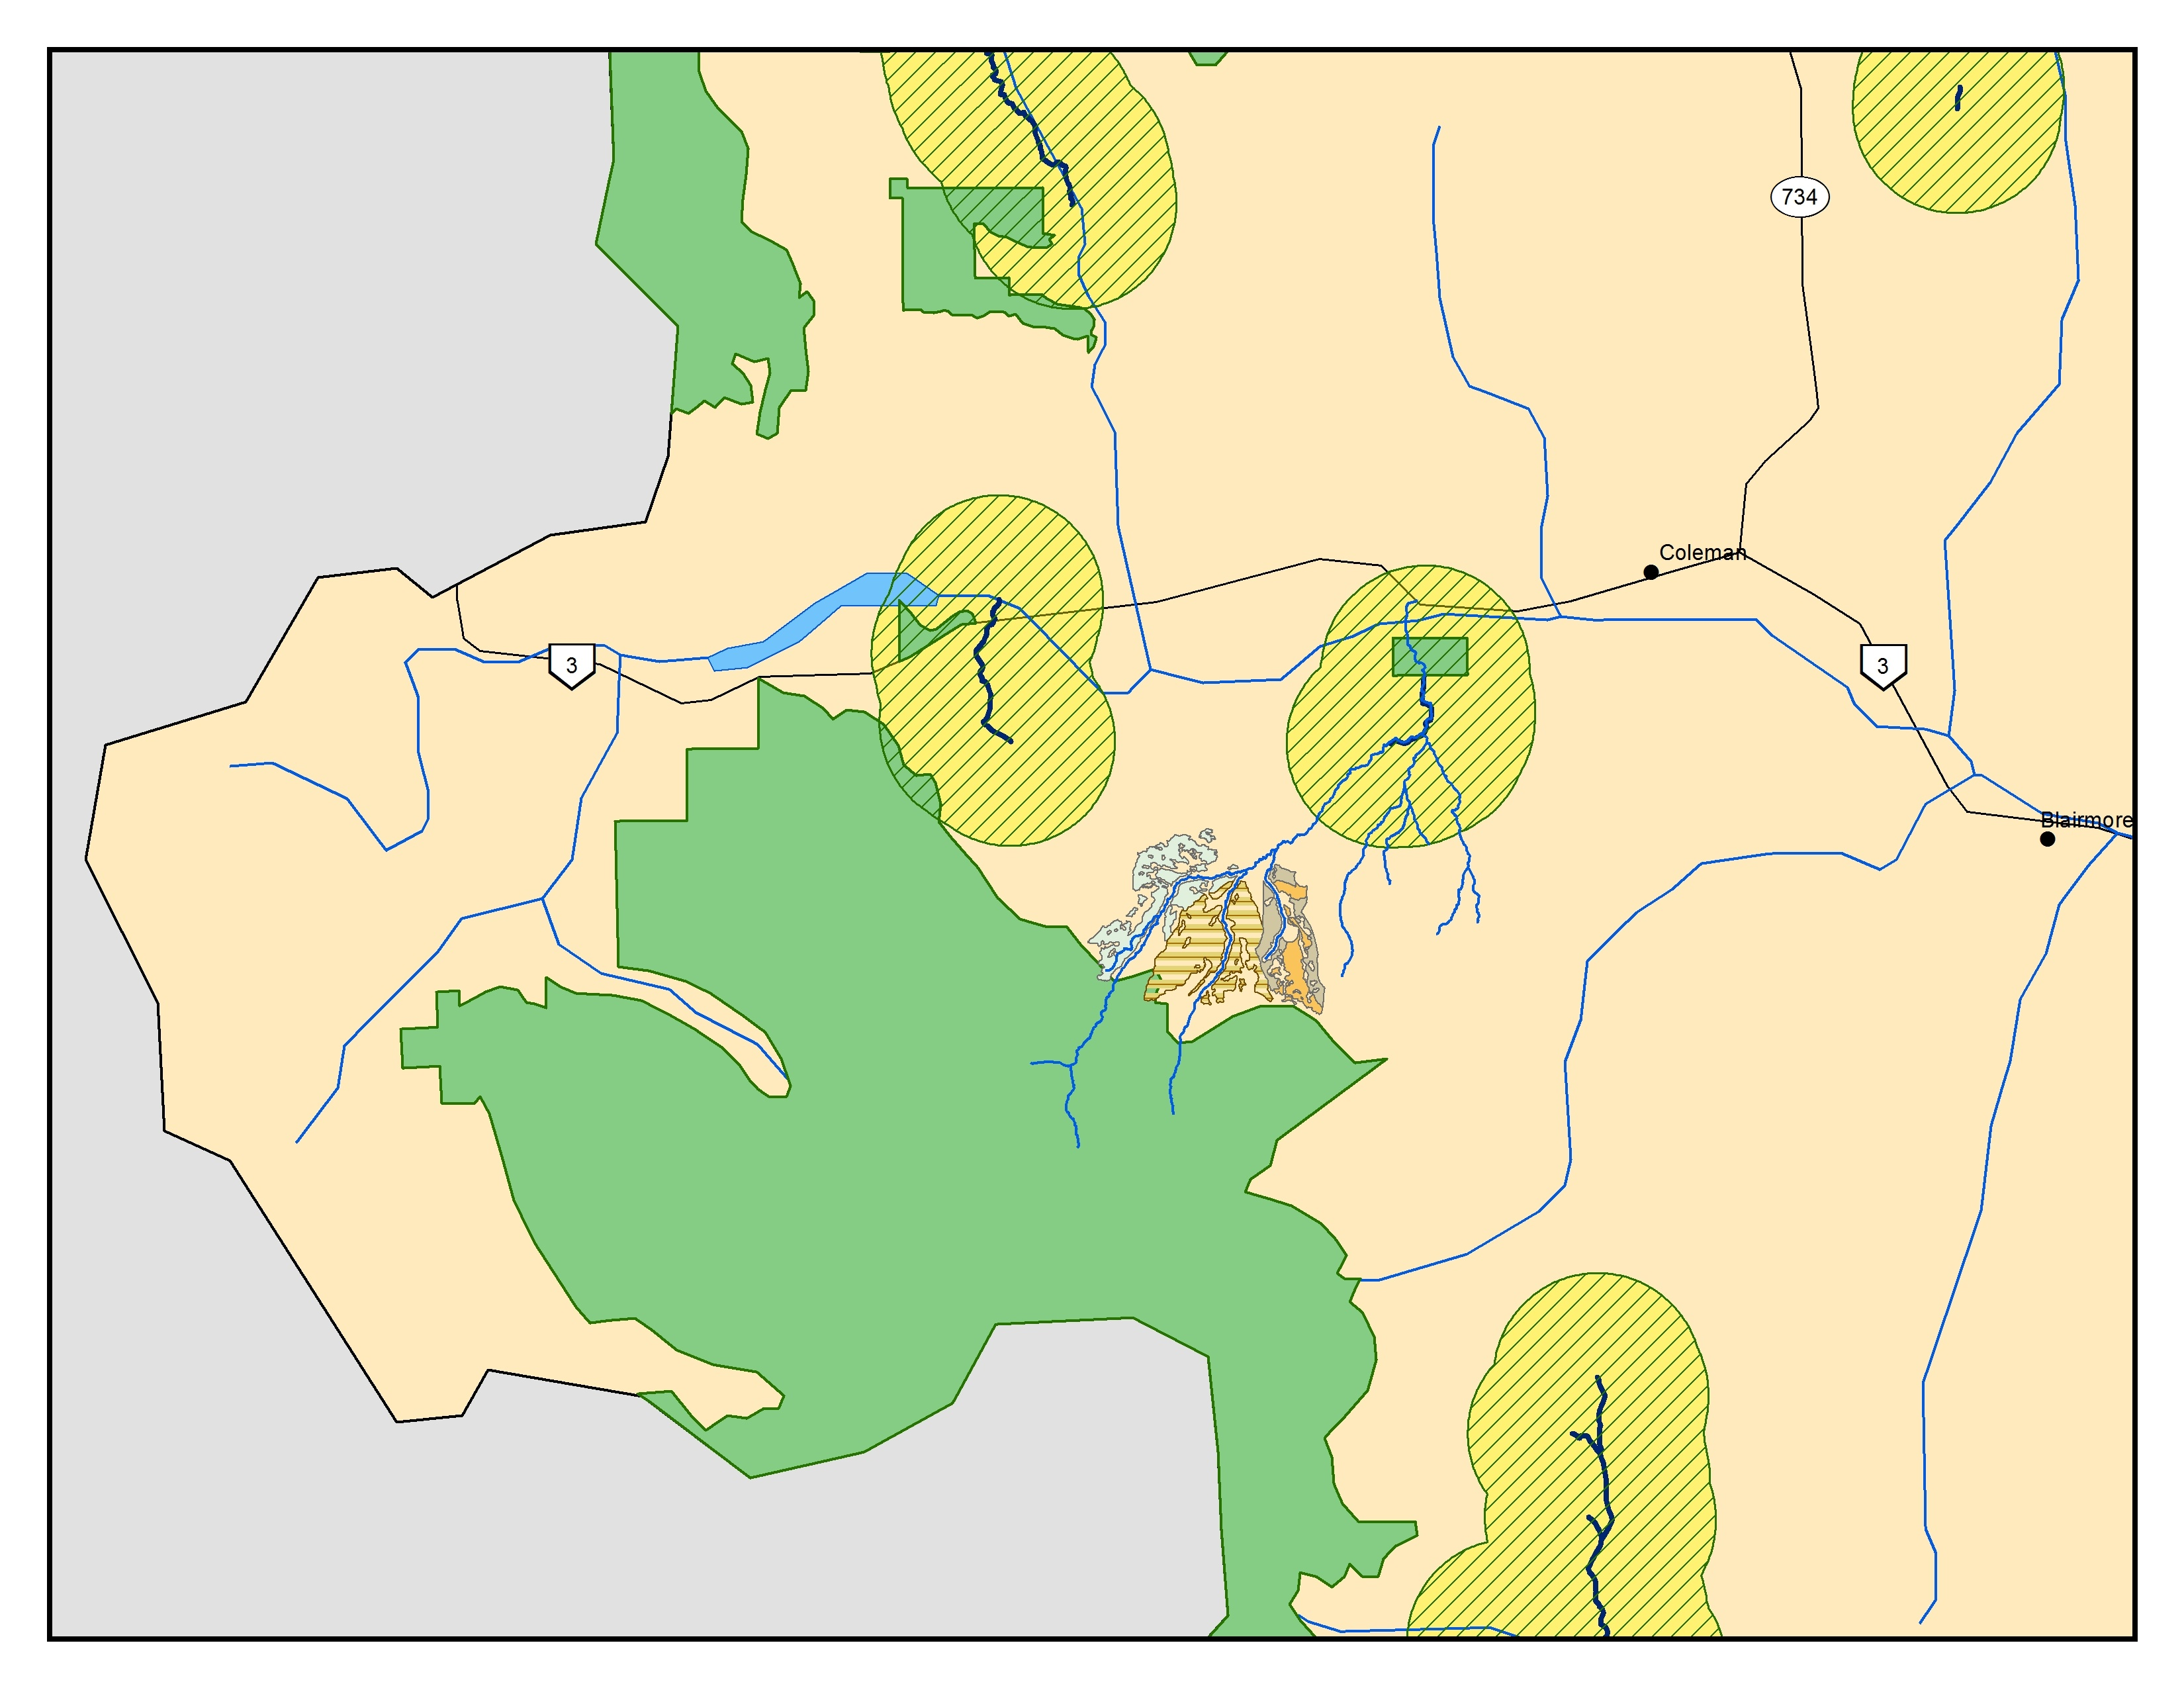 20140731_map_star_creek_with_wsct_ch_and_ssrp_parks.jpg